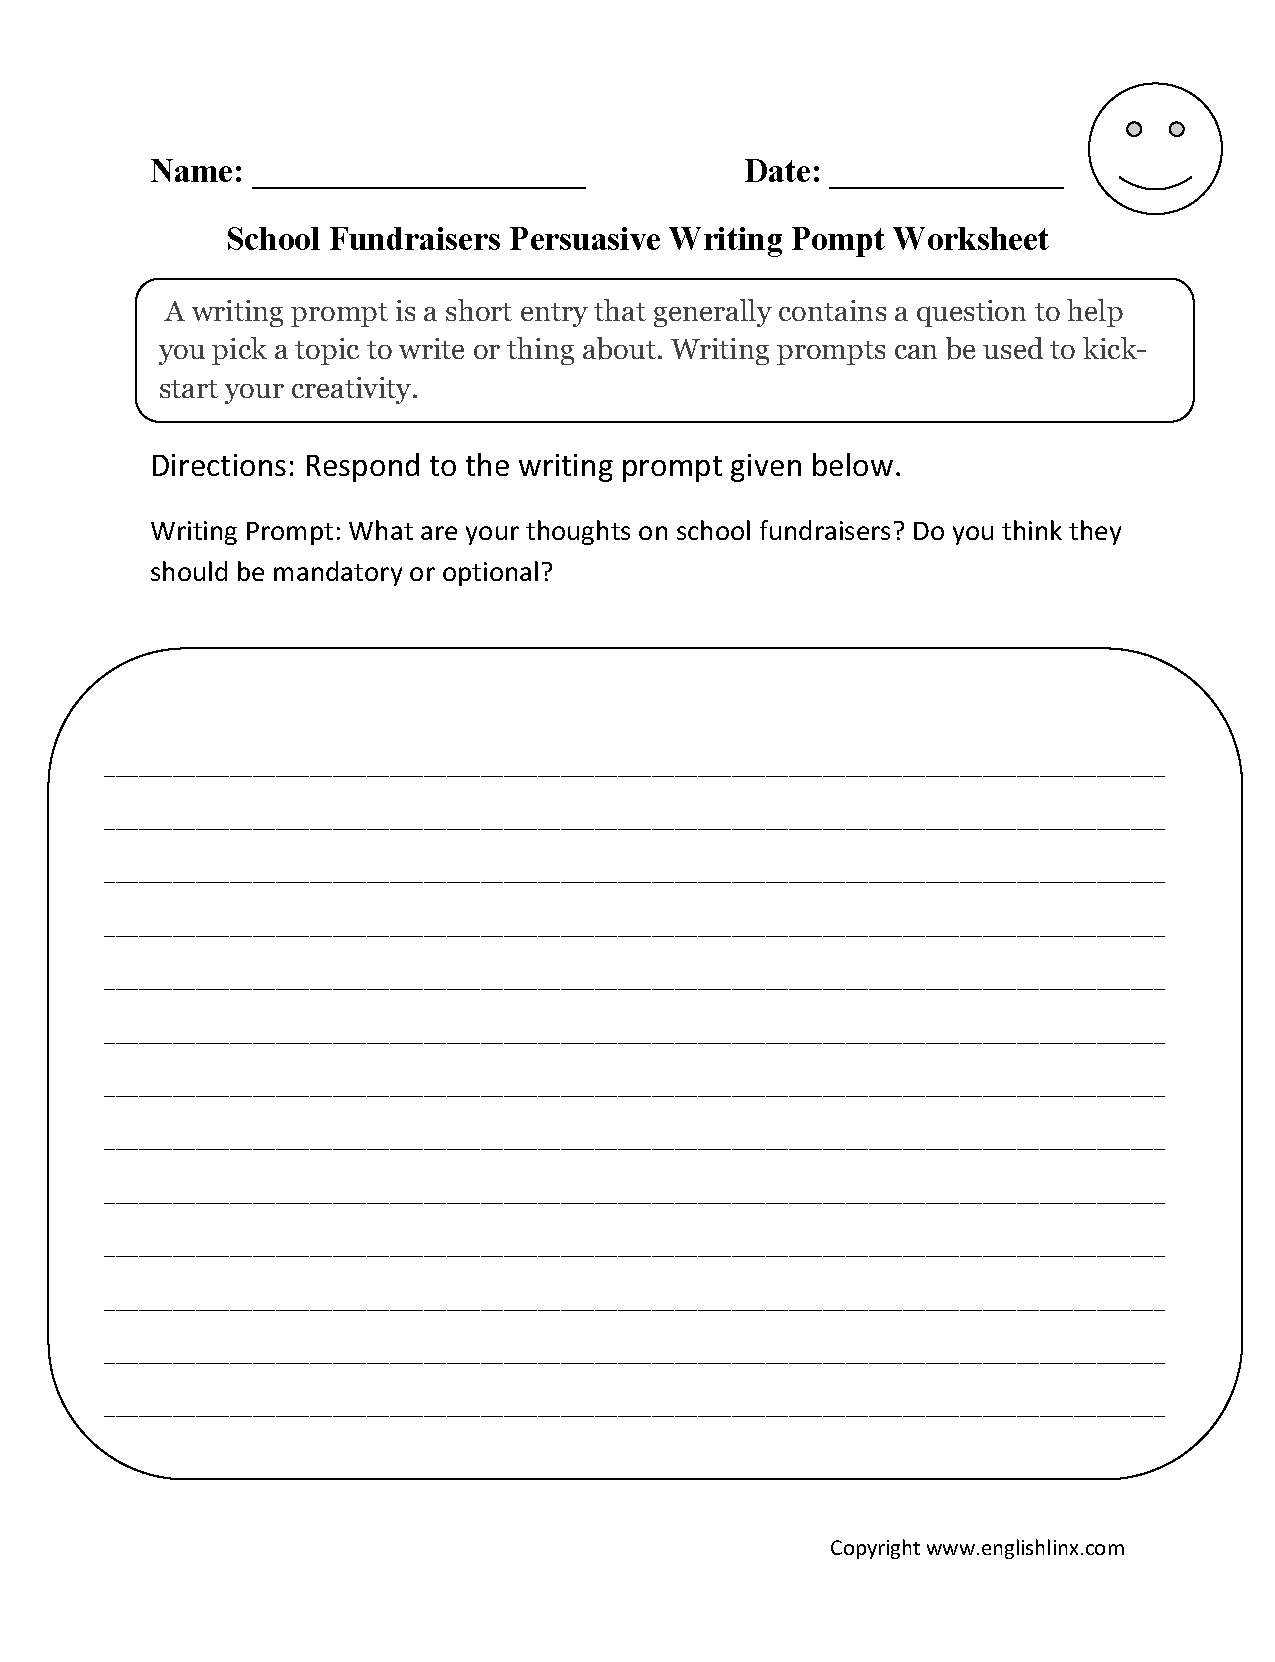 Writing Prompts Worksheets  Persuasive Writing Prompts Worksheets For Persuasive Writing Worksheets